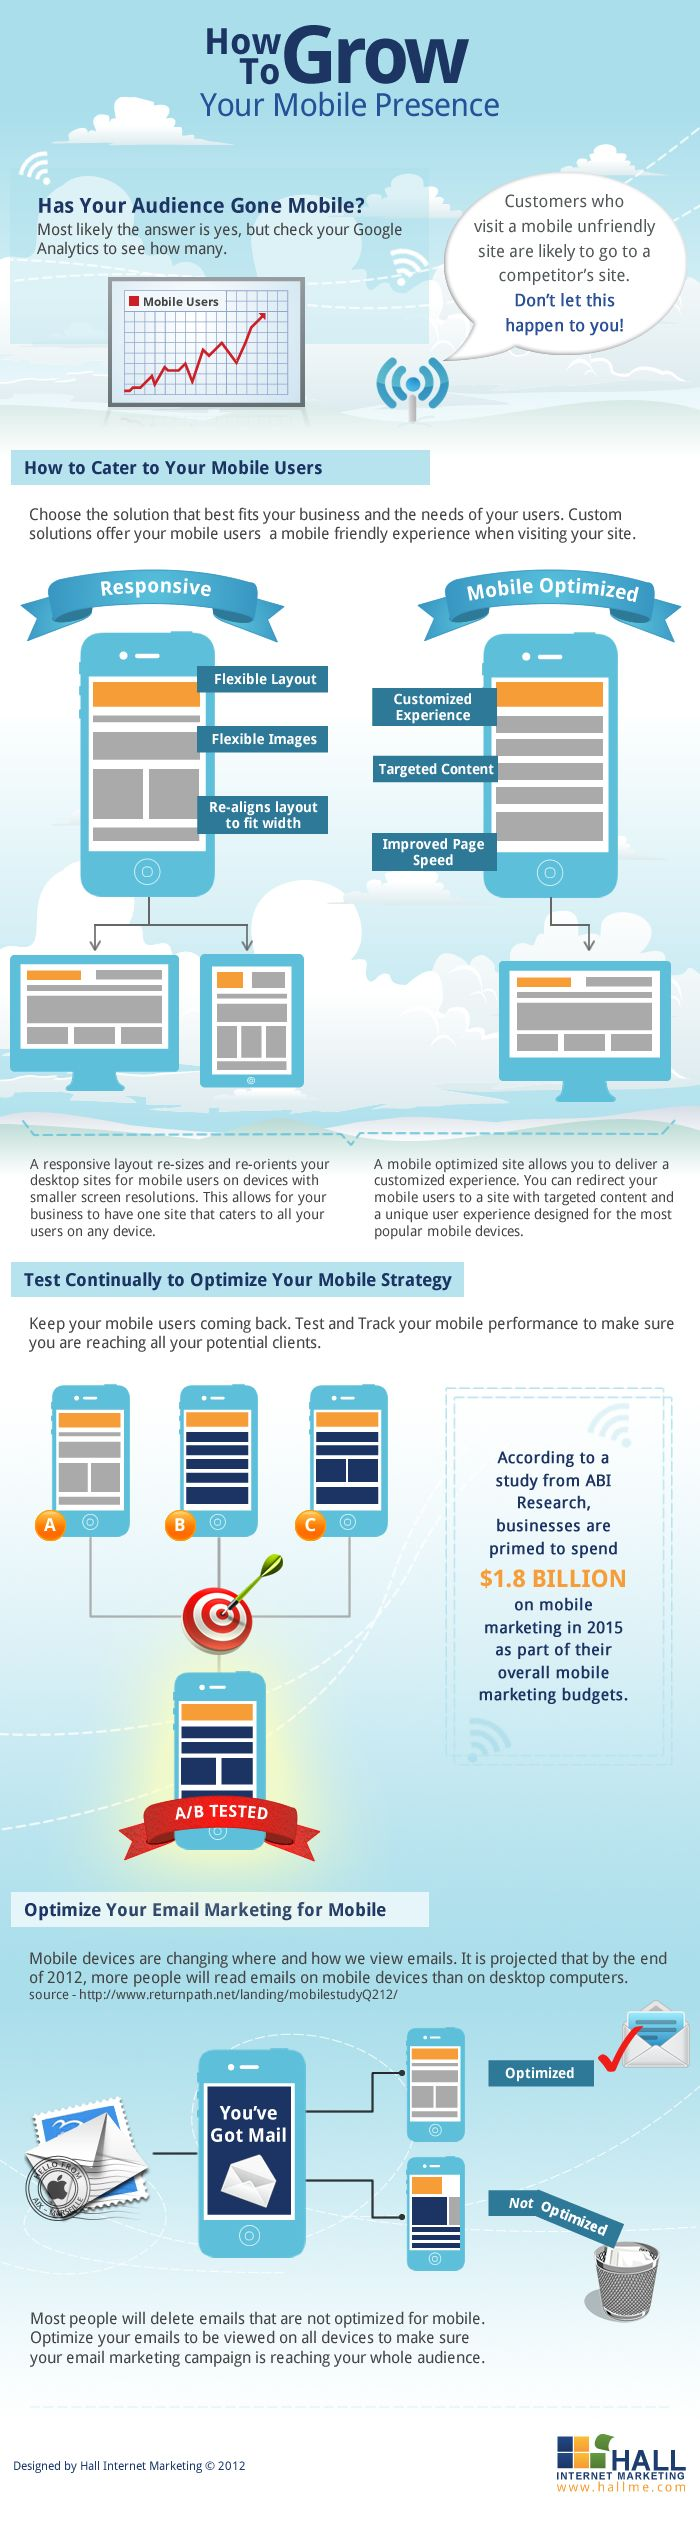 The world is going mobile and your business does not want to be left behind! Make sure your website can be viewed on mobile devices by creating a resp